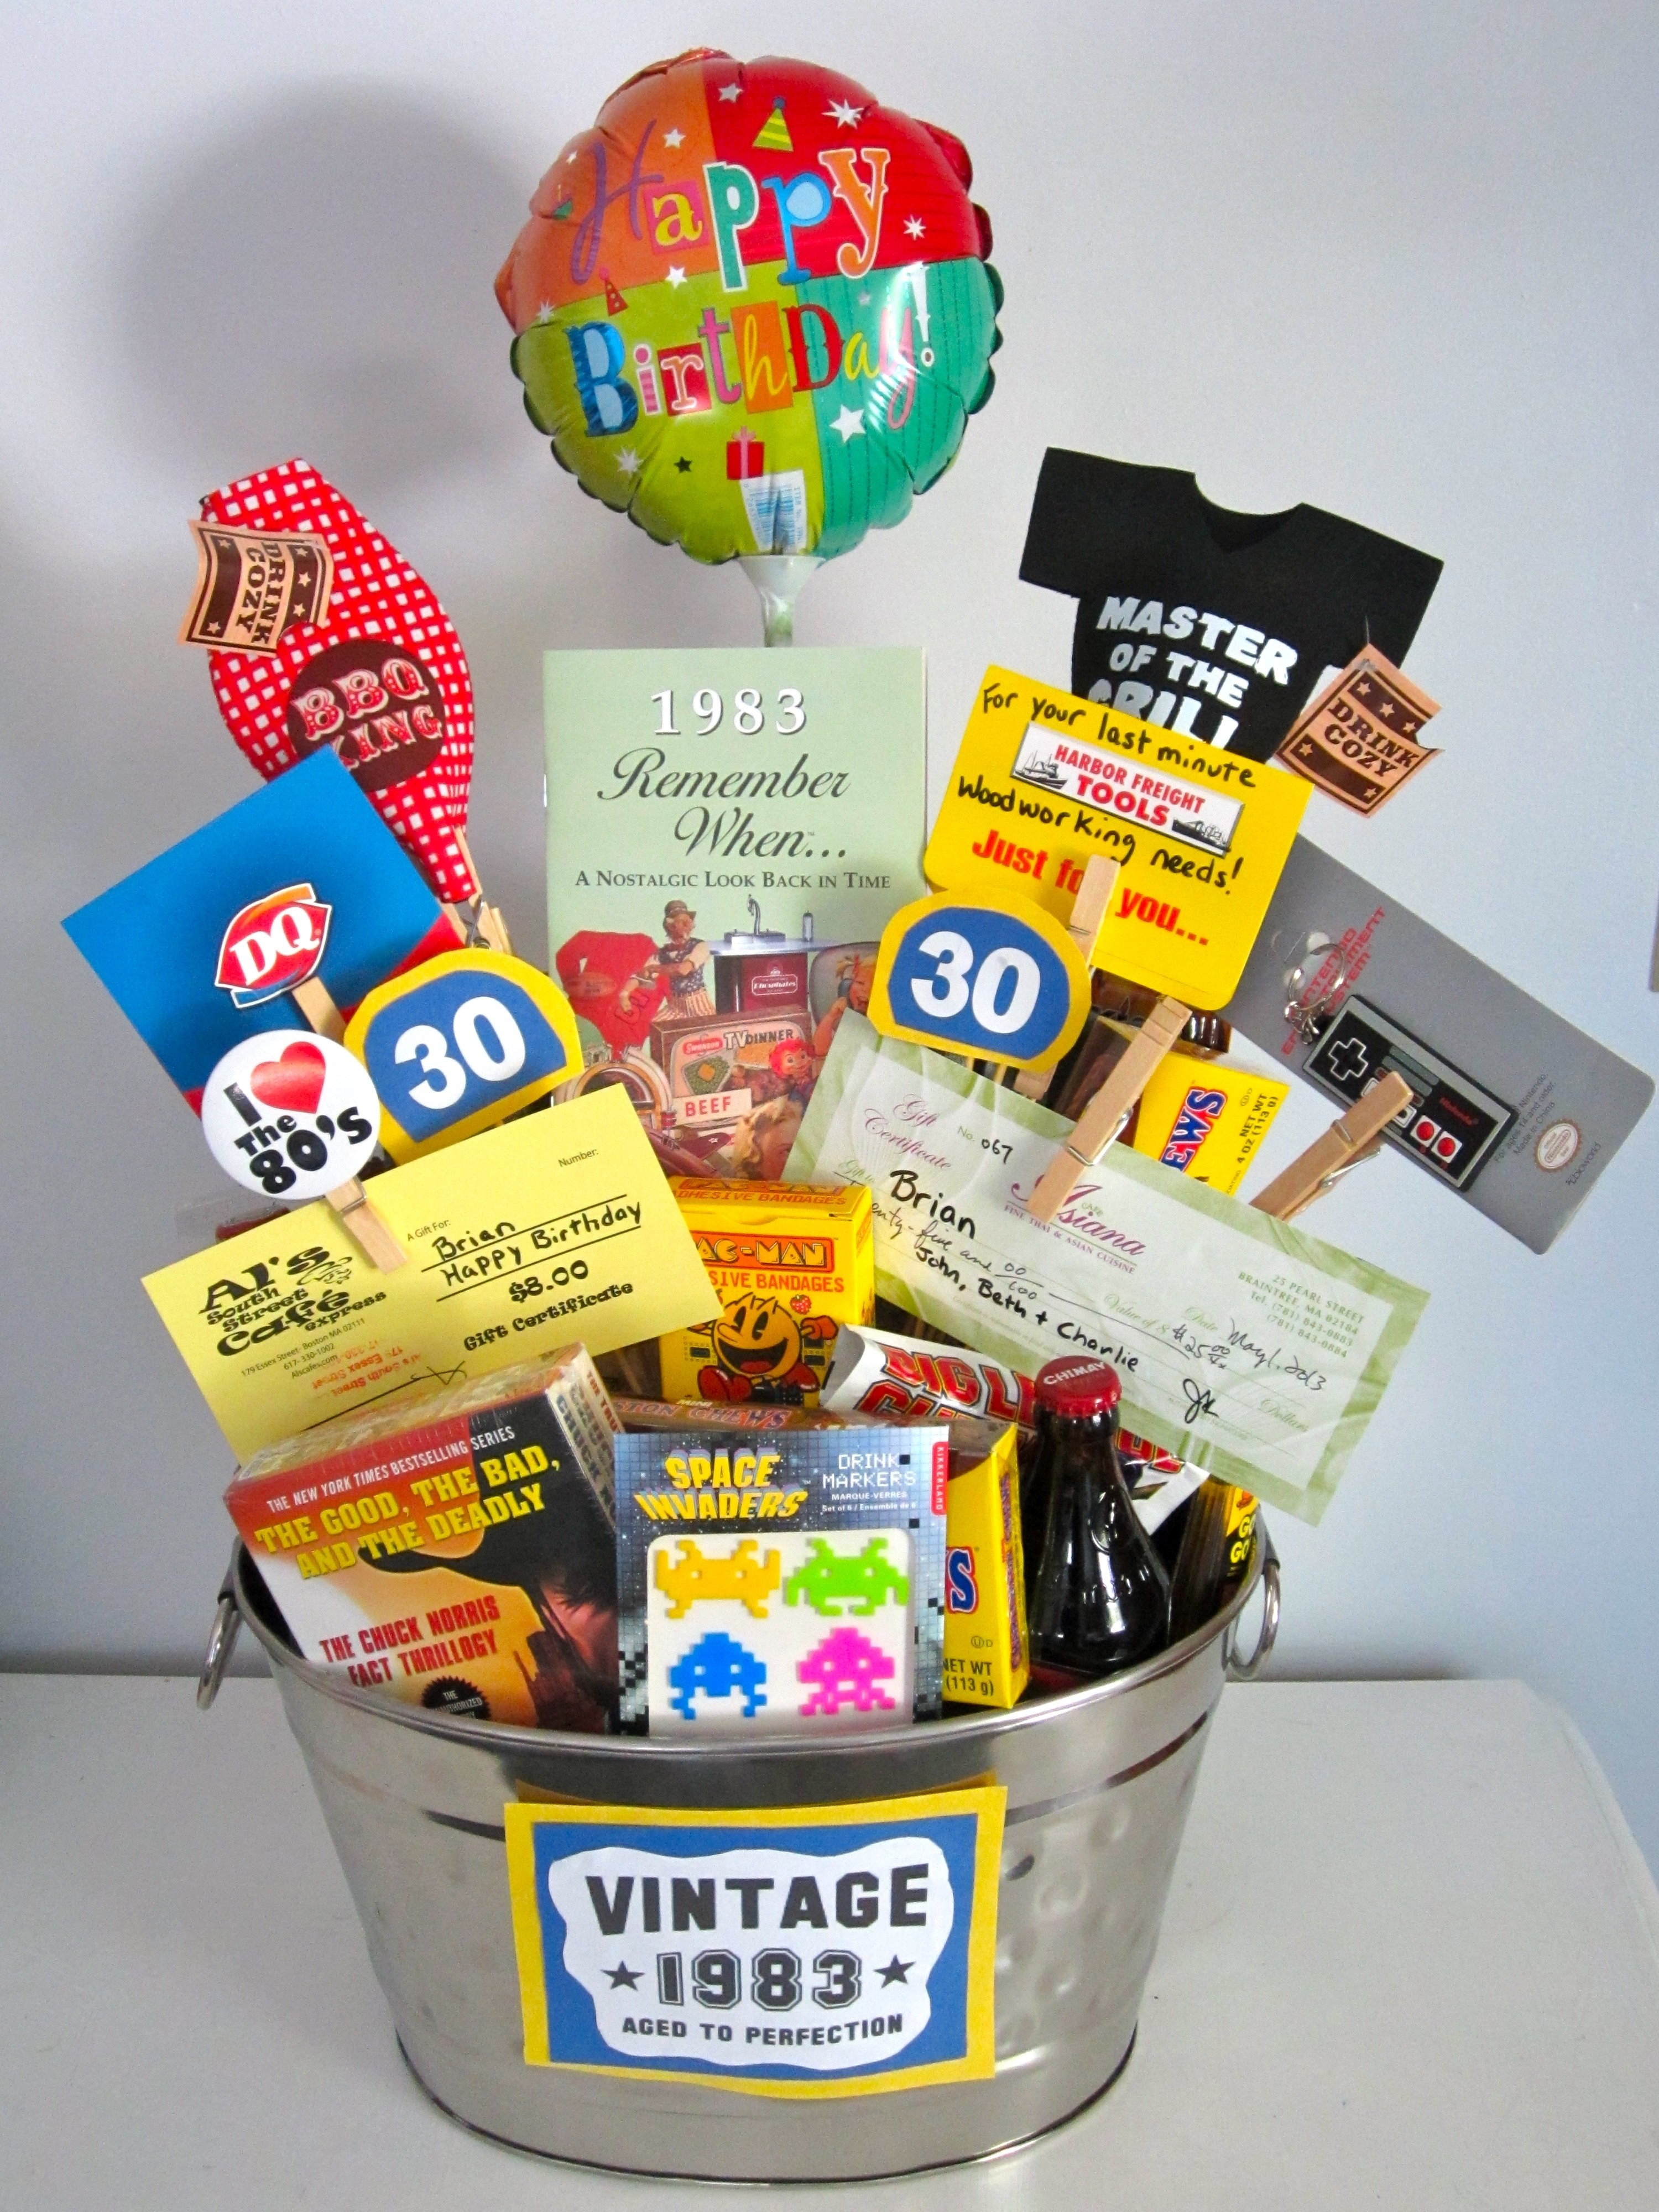 10 Fabulous Gift Ideas For A Brother 30th birthday gift i made for my brother filled it with all his 2020